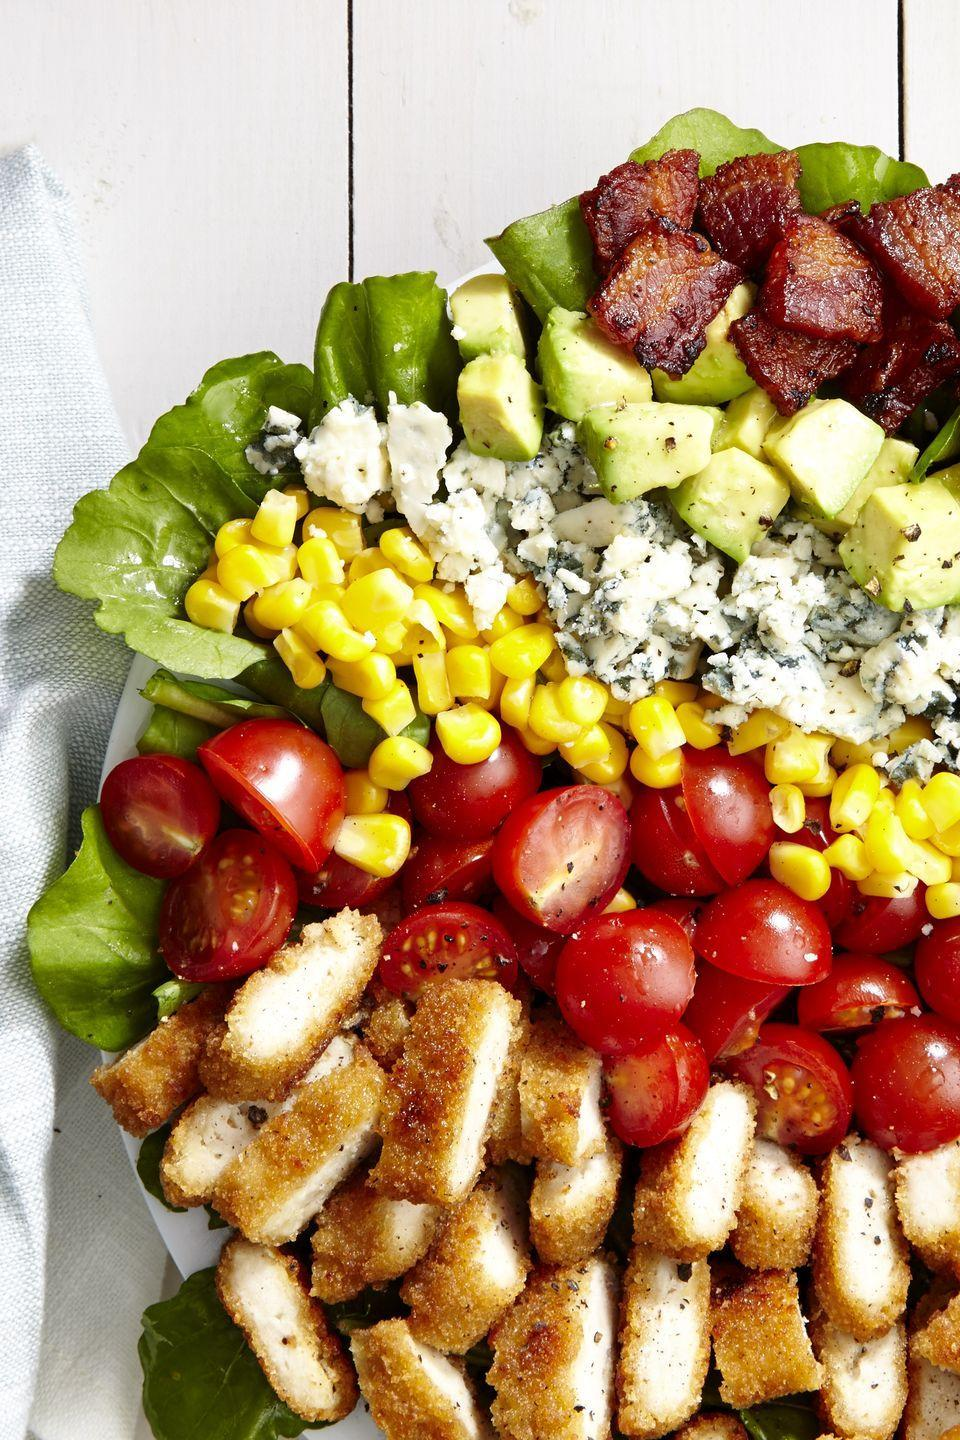 """<p>Up your salad game with this classic Cobb.</p><p>Get the recipe from <a href=""""/cooking/recipe-ideas/recipes/a46115/breaded-chicken-cobb-salad-recipe/"""" data-ylk=""""slk:Delish"""" class=""""link rapid-noclick-resp"""">Delish</a>.</p>"""